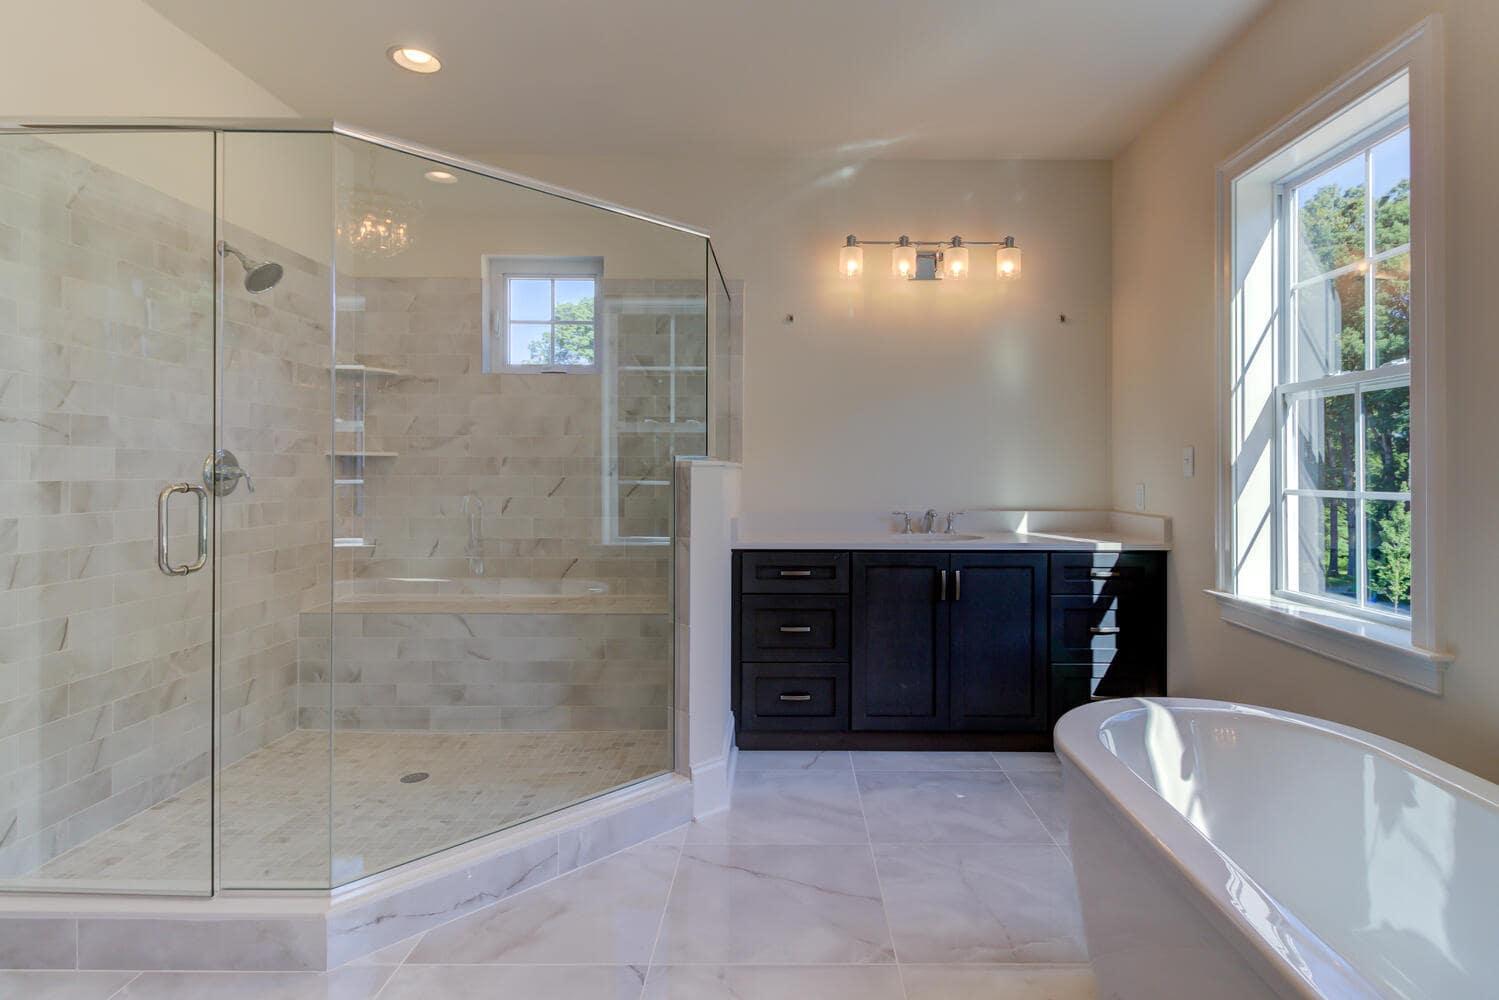 Bathroom in a new home from Bentley Homes.